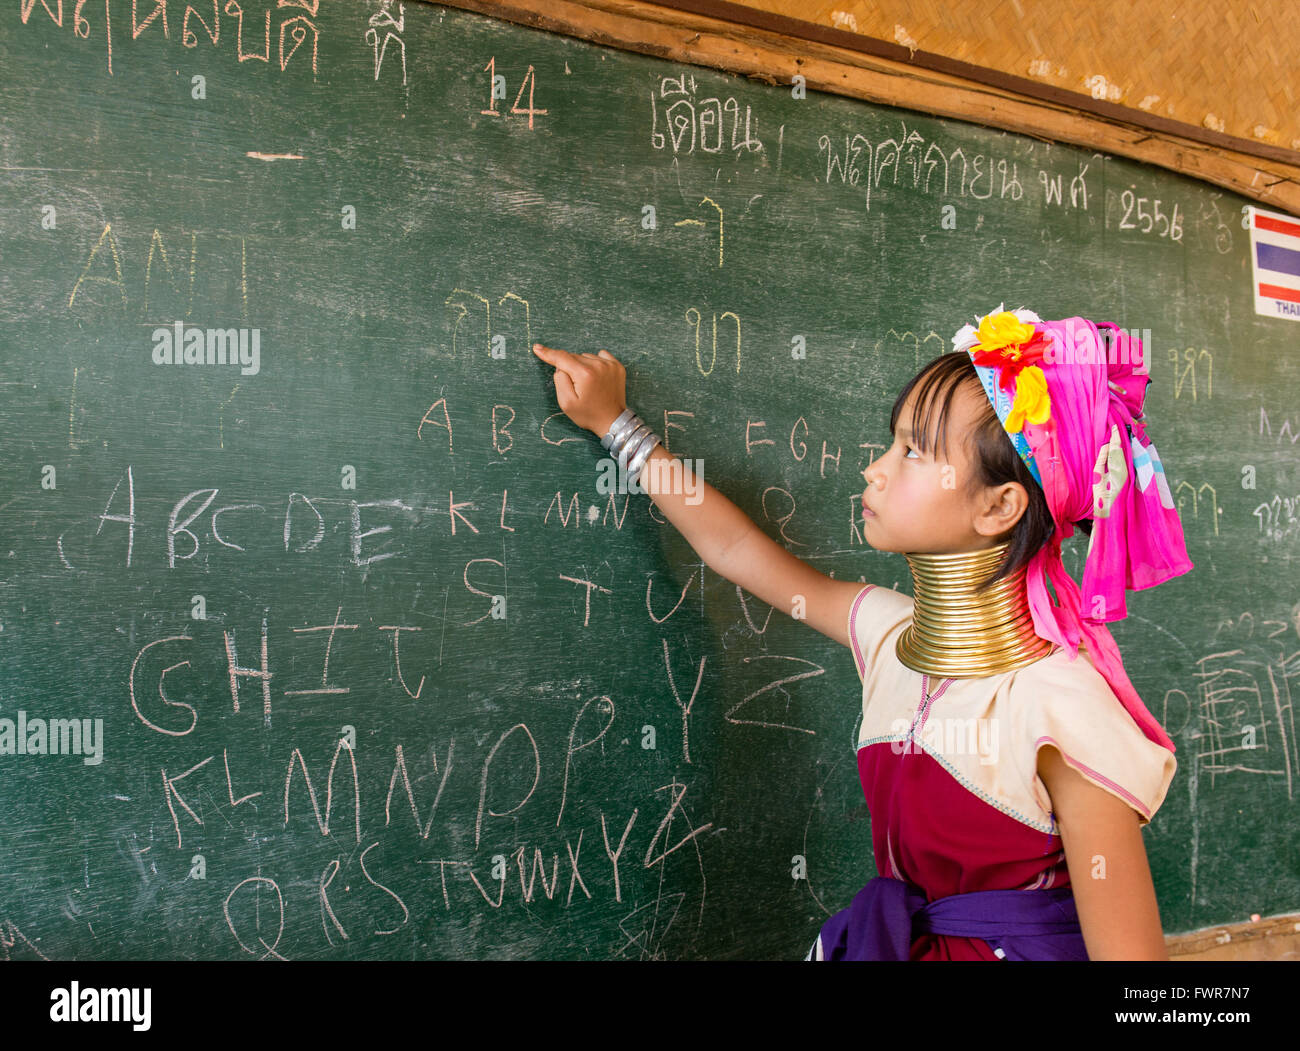 Girl with neck rings at school, Padaung hilltribe, long-necked women, schoolgirl pointing at a blackboard, Chiang - Stock Image